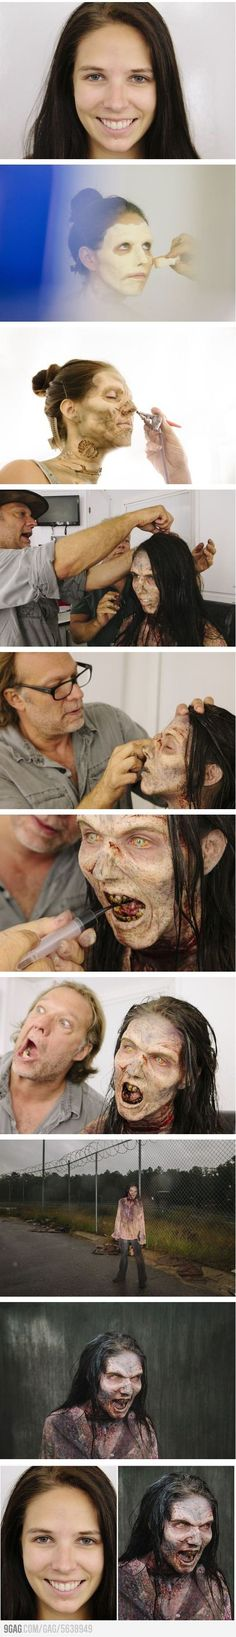 The Making Of A Zombie From 'The Walking Dead'. Wow, that is some intense makeup artistry